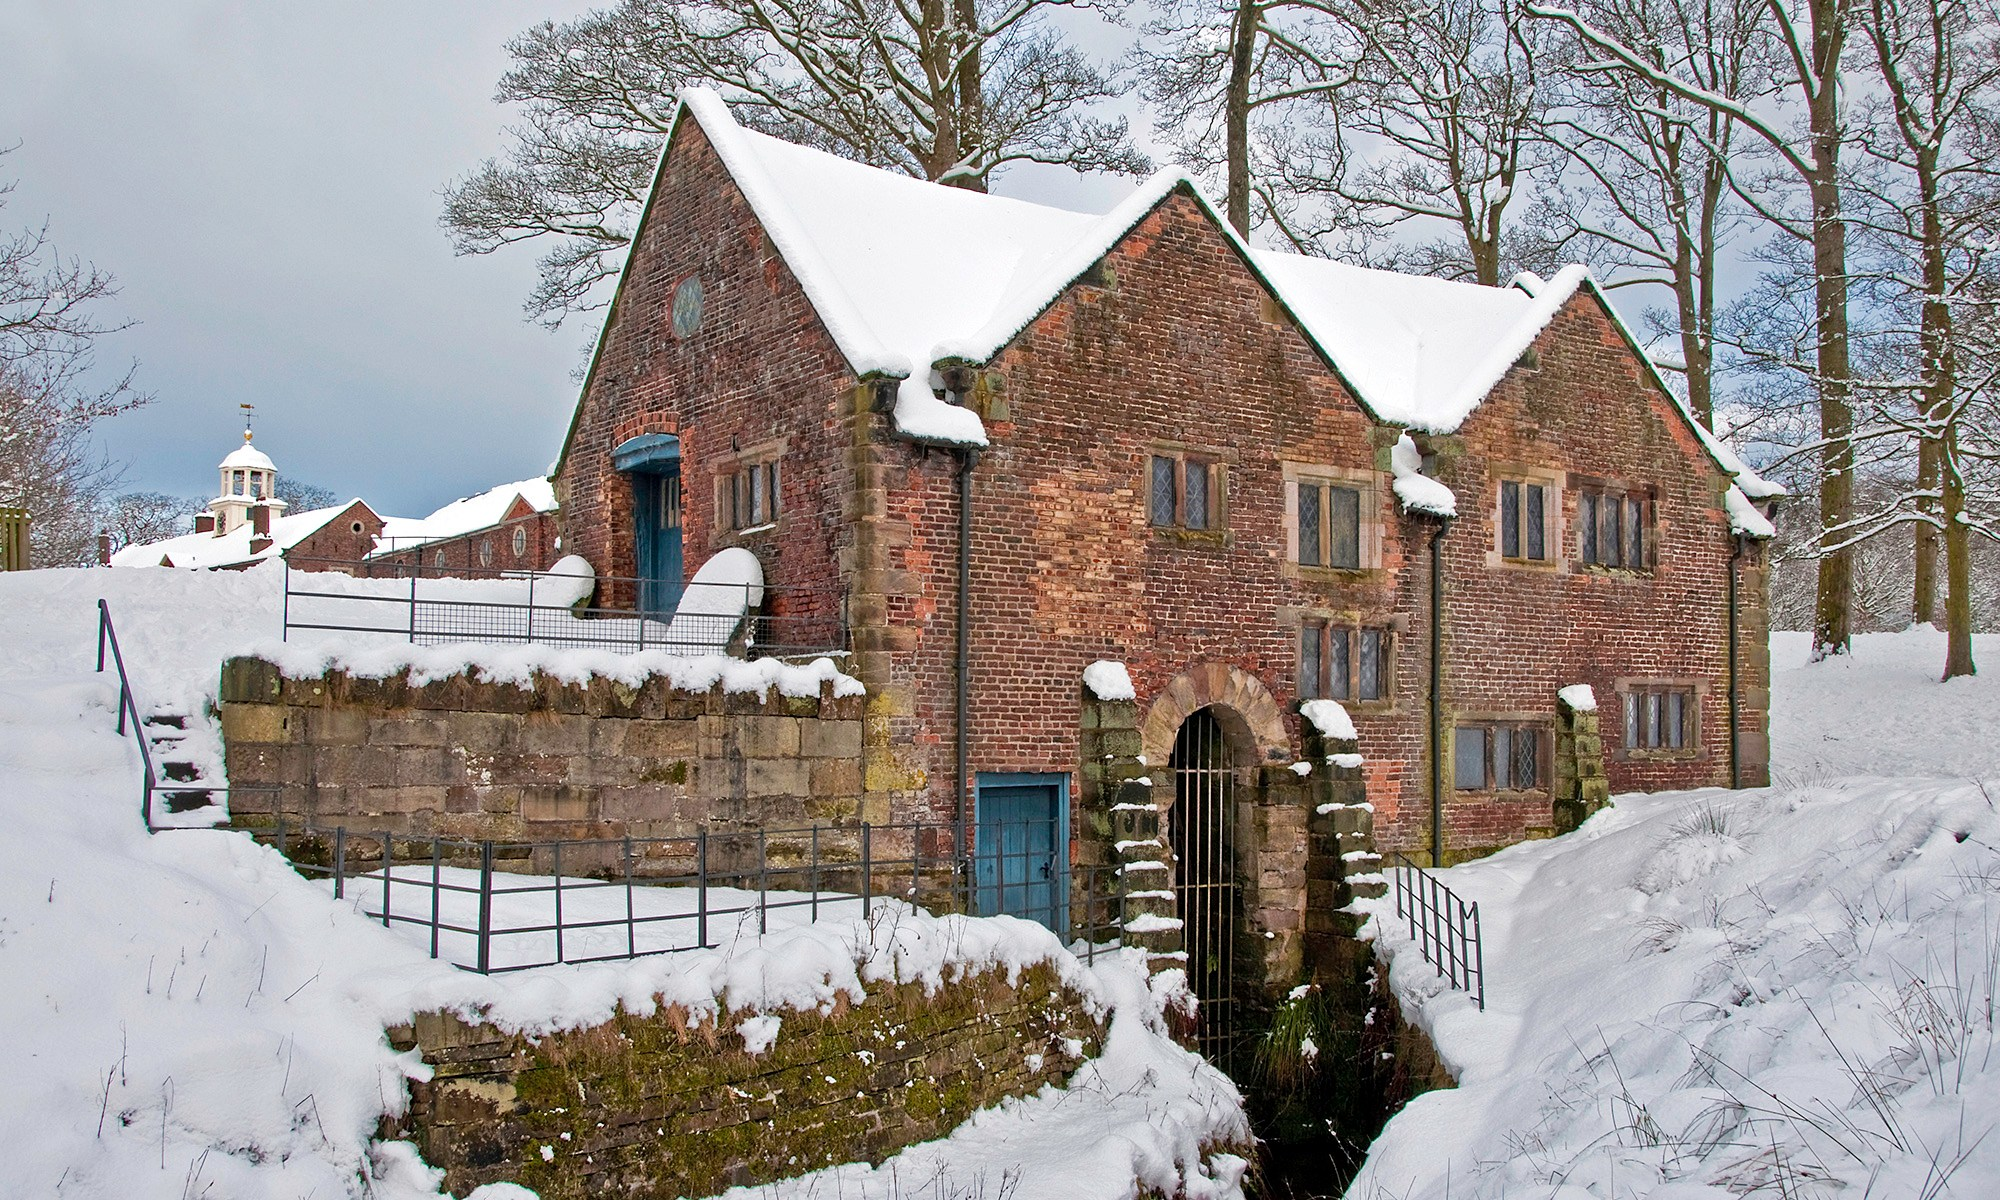 Dunham Massey Mill in the Snow